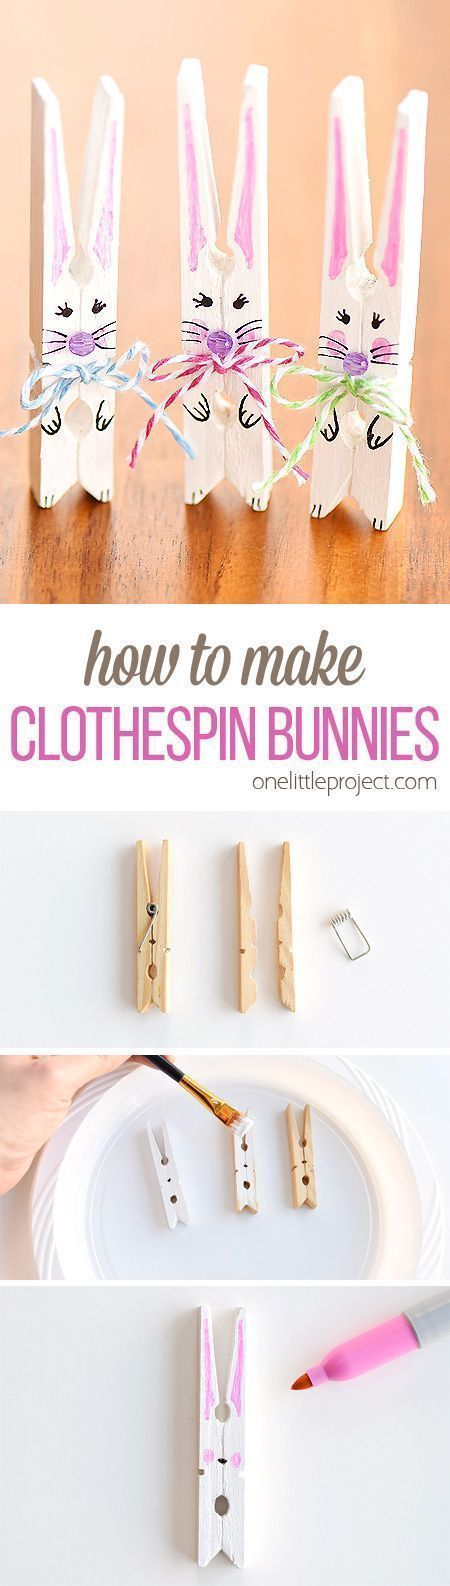 DIY Craft: These clothespin bunnies are so adorable and they're really simple to make! They're a great little Easter decoration and a super cute Easter craft to make with the kids. Such a fun and easy spring craft idea!